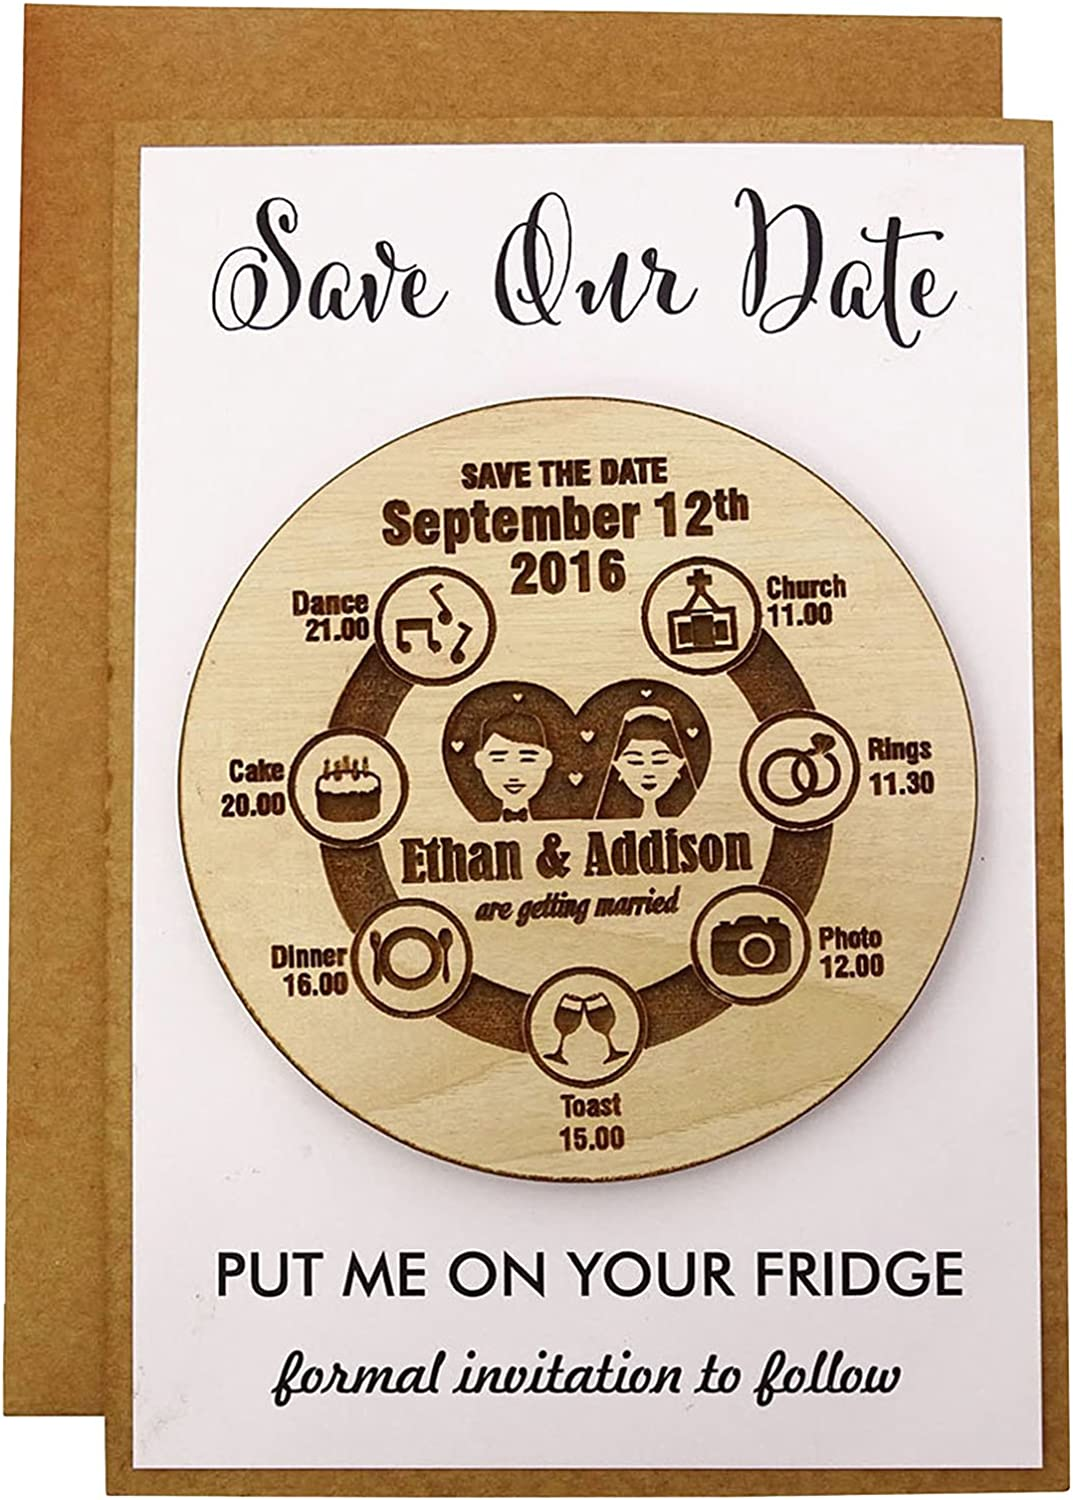 Atlanta Mall Personalized Wedding Save The Date 100% quality warranty! Engraved Wood 20 Cards Rustic